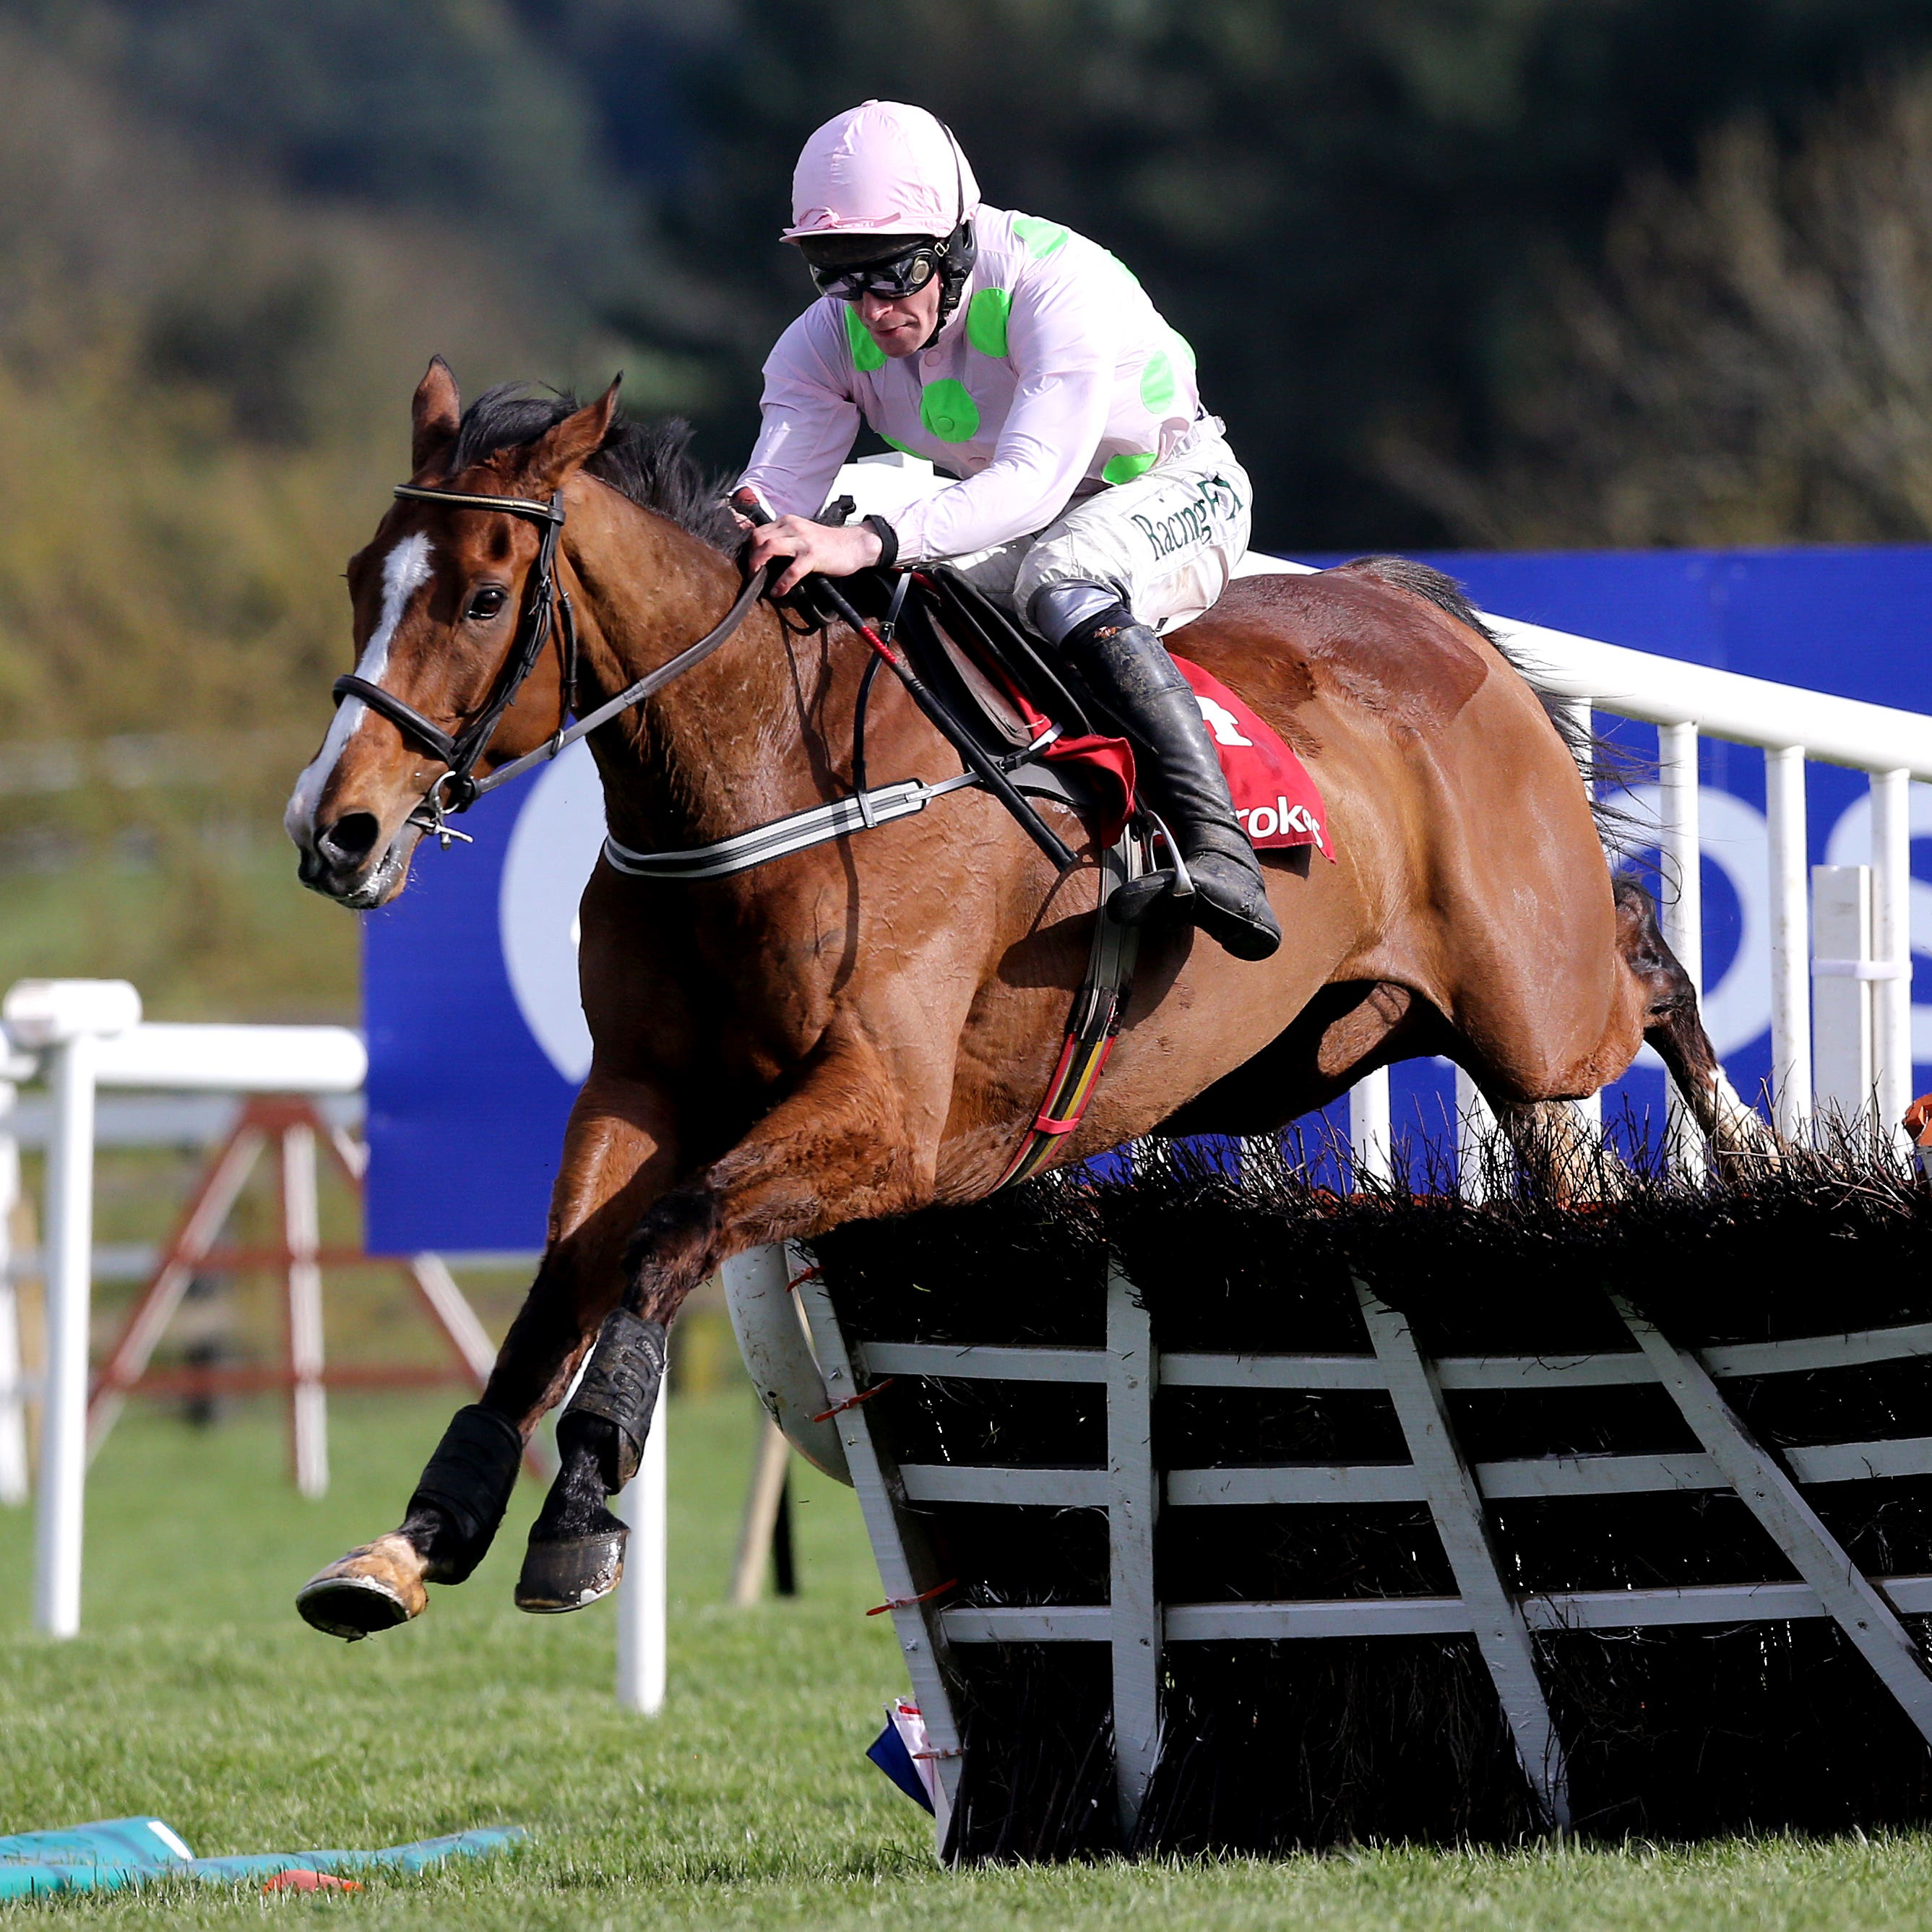 Faugheen is set to step back up in distance at Leopardstown